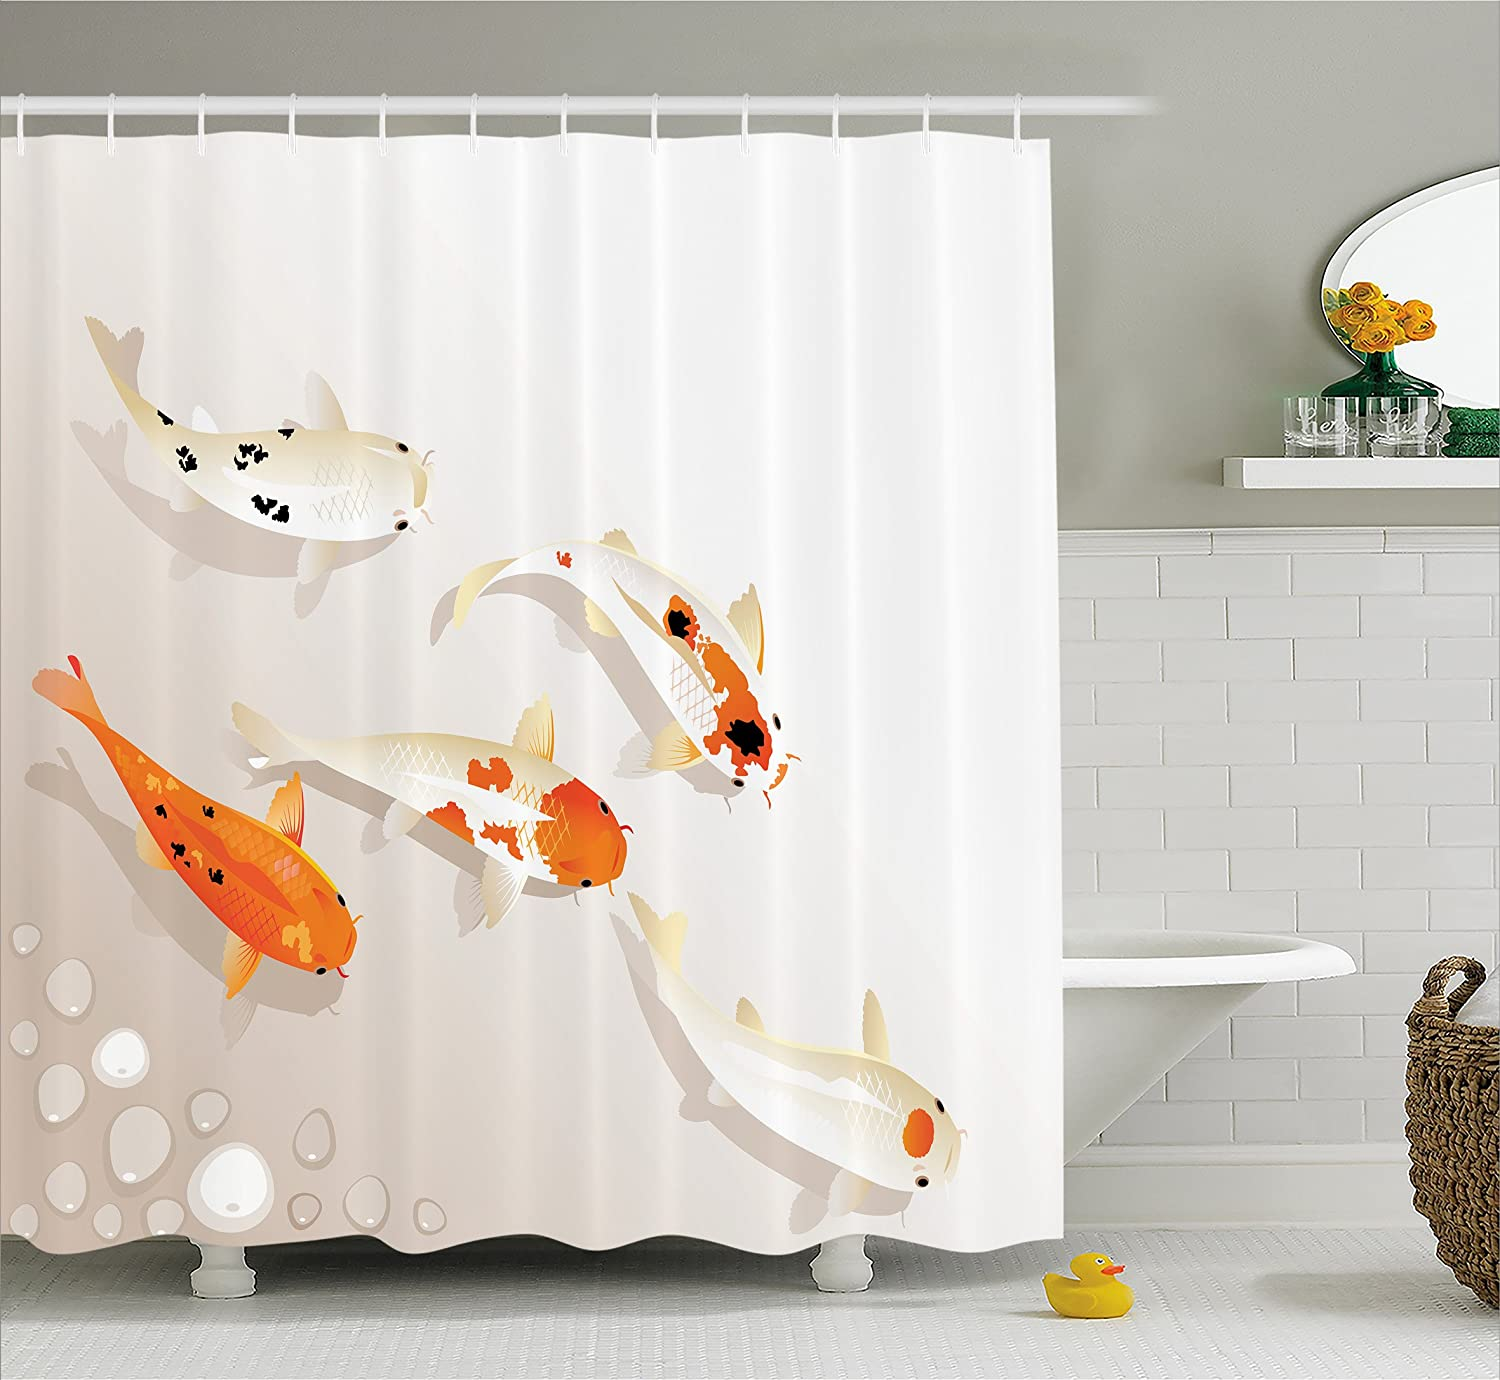 """Ambesonne Animal Shower Curtain, Traditional Koi Carps with Spots Oriental Items Representing Love Nautical Theme, Cloth Fabric Bathroom Decor Set with Hooks, 70"""" Long, Orange Beige"""